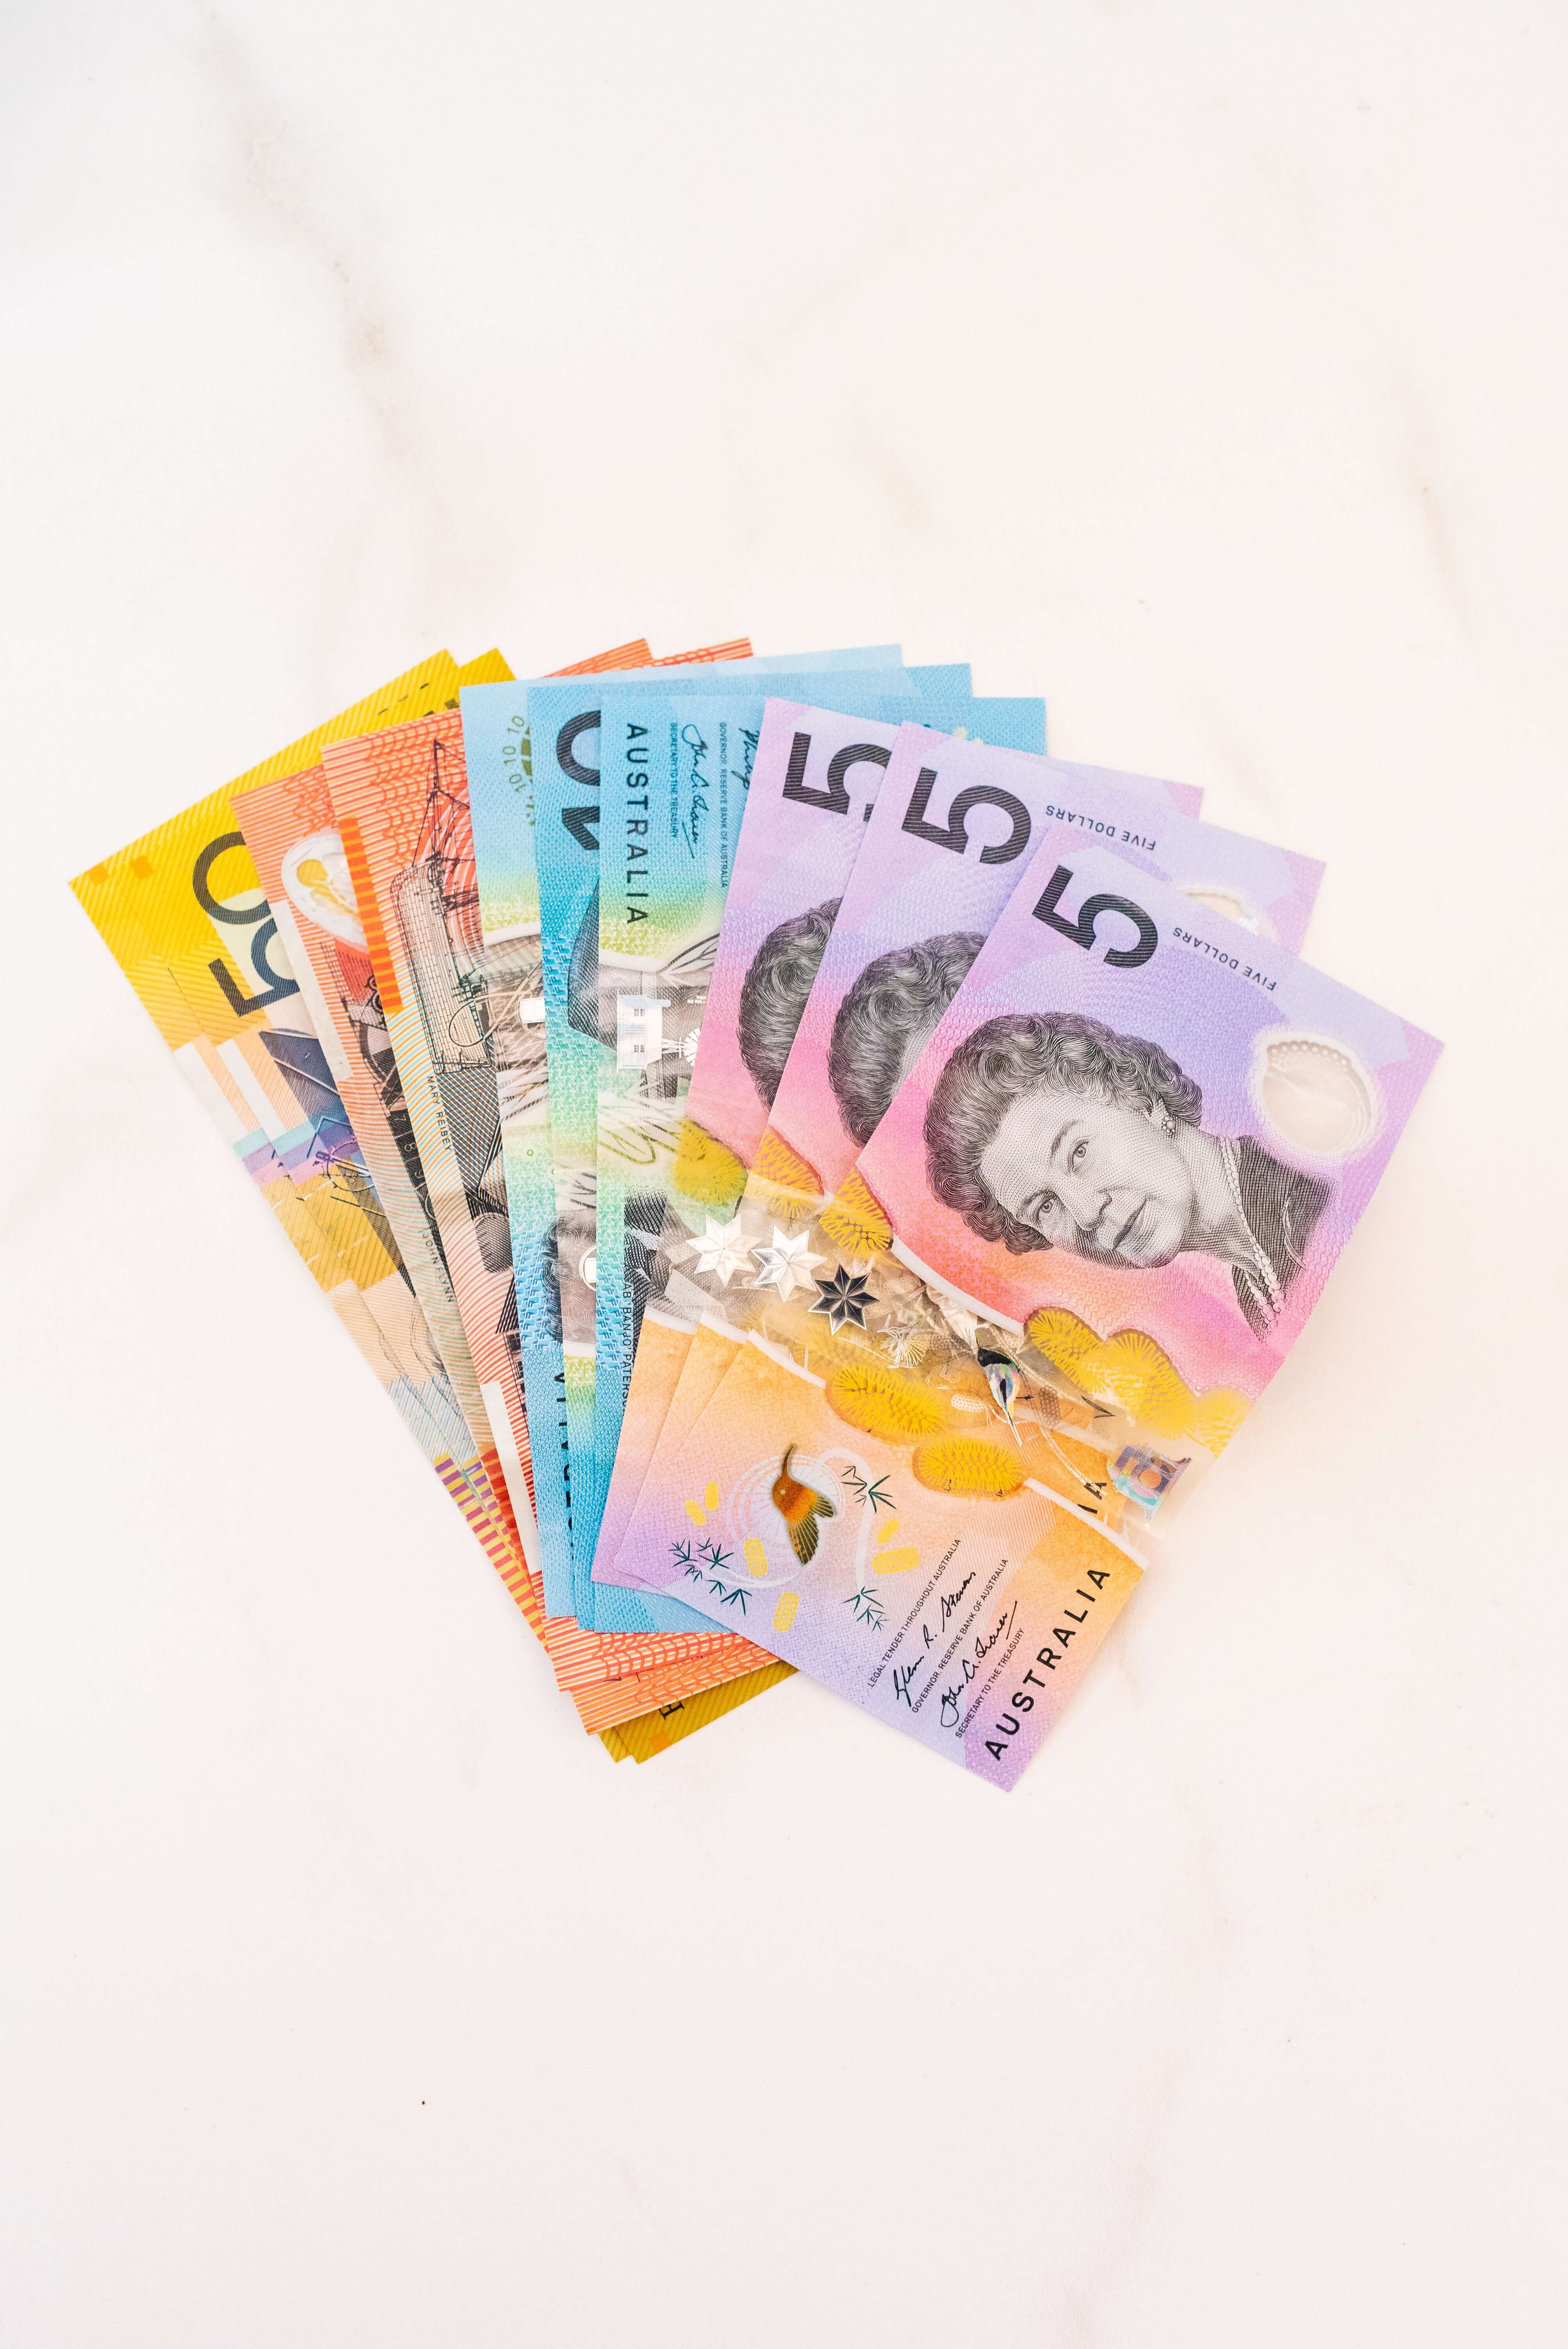 Moving to Australia? Wondering how much money you need? It's recommended to have $2.500+